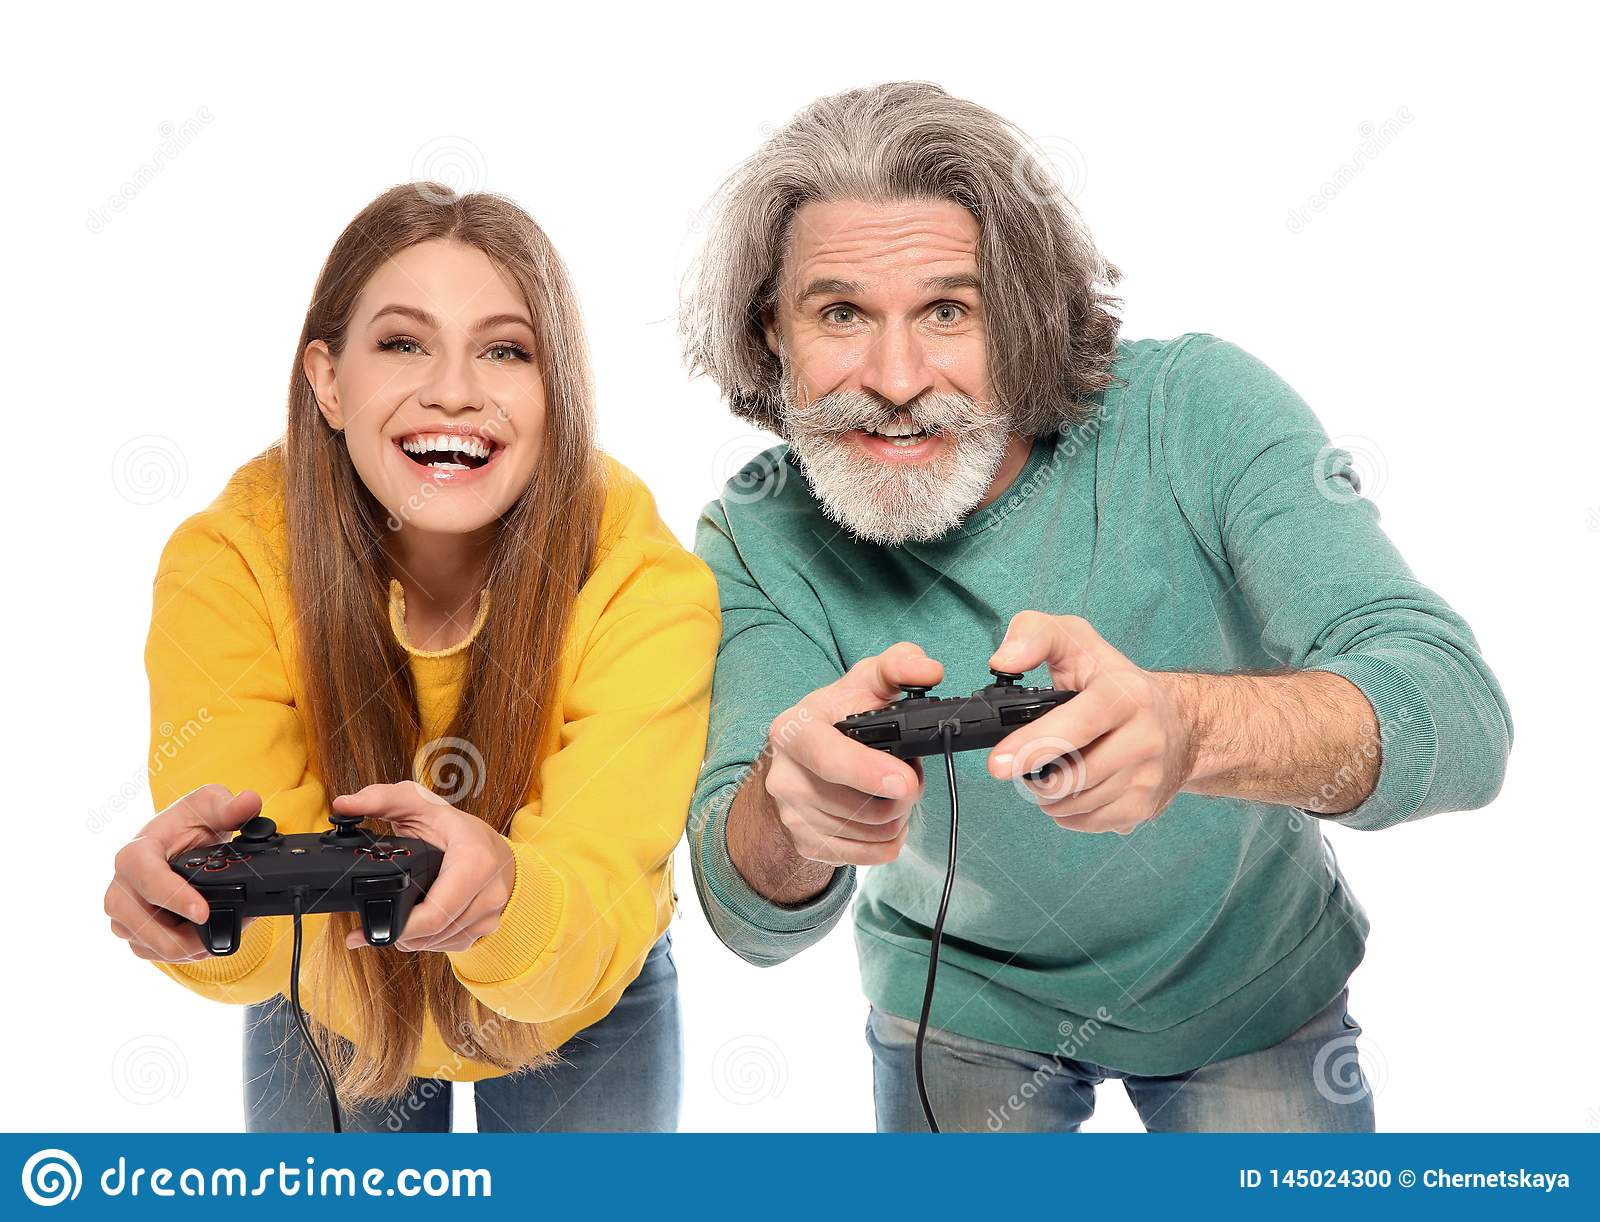 Mature man and young woman playing video games